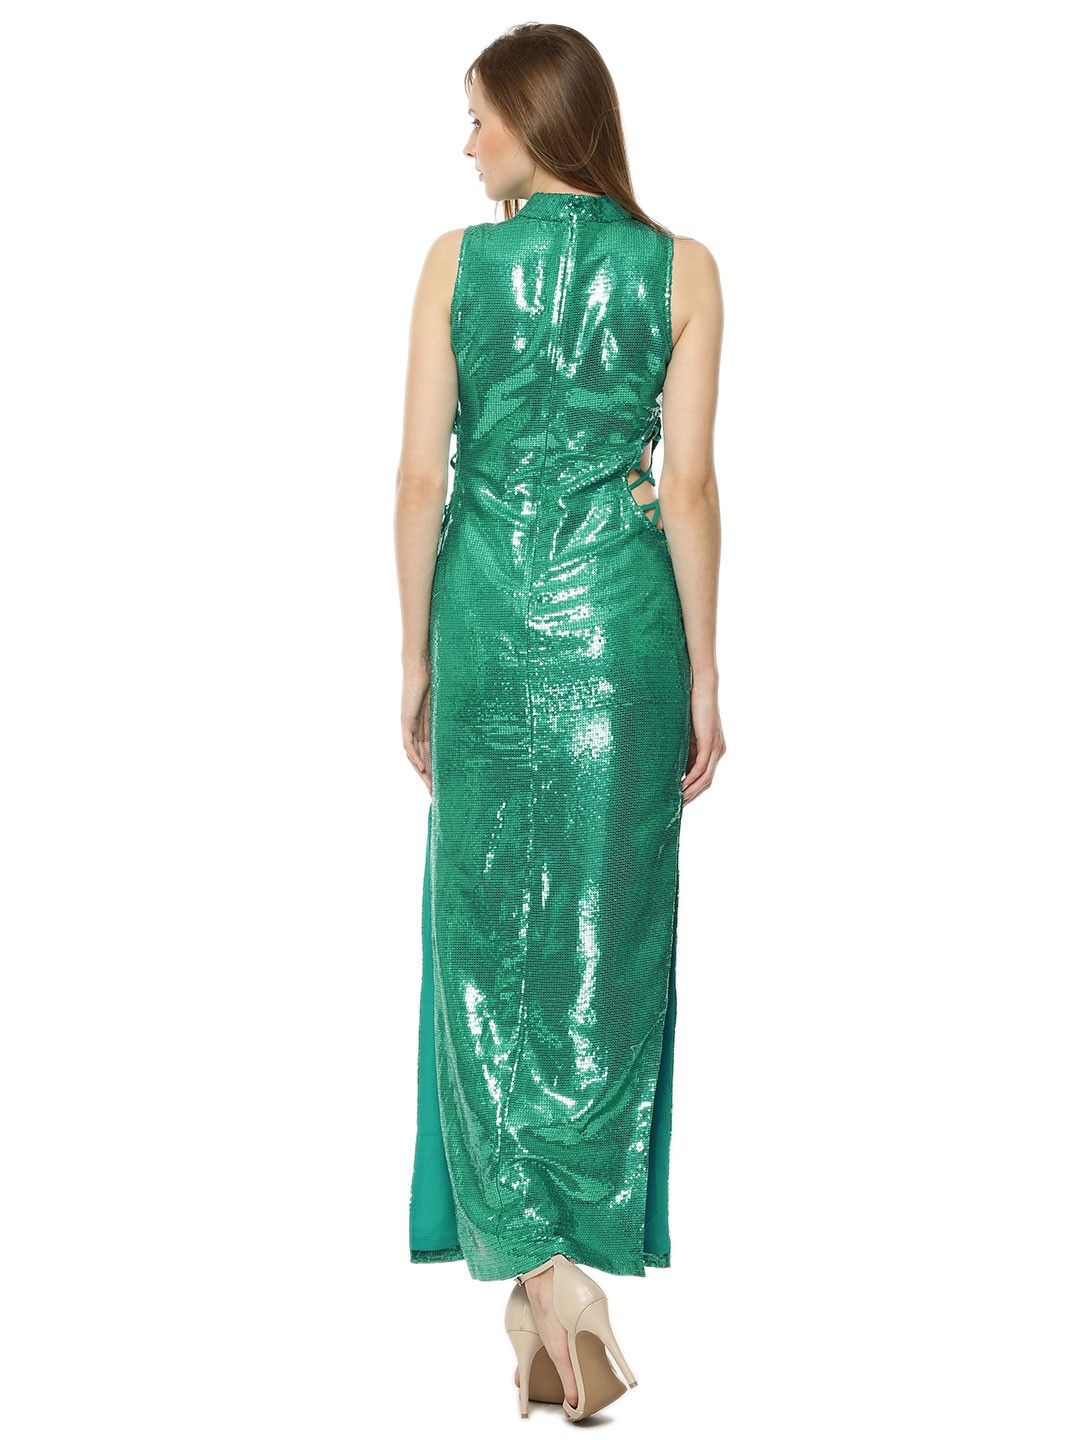 Buy High Neck Cut Out Sequin Maxi Dress In The Style Of ...